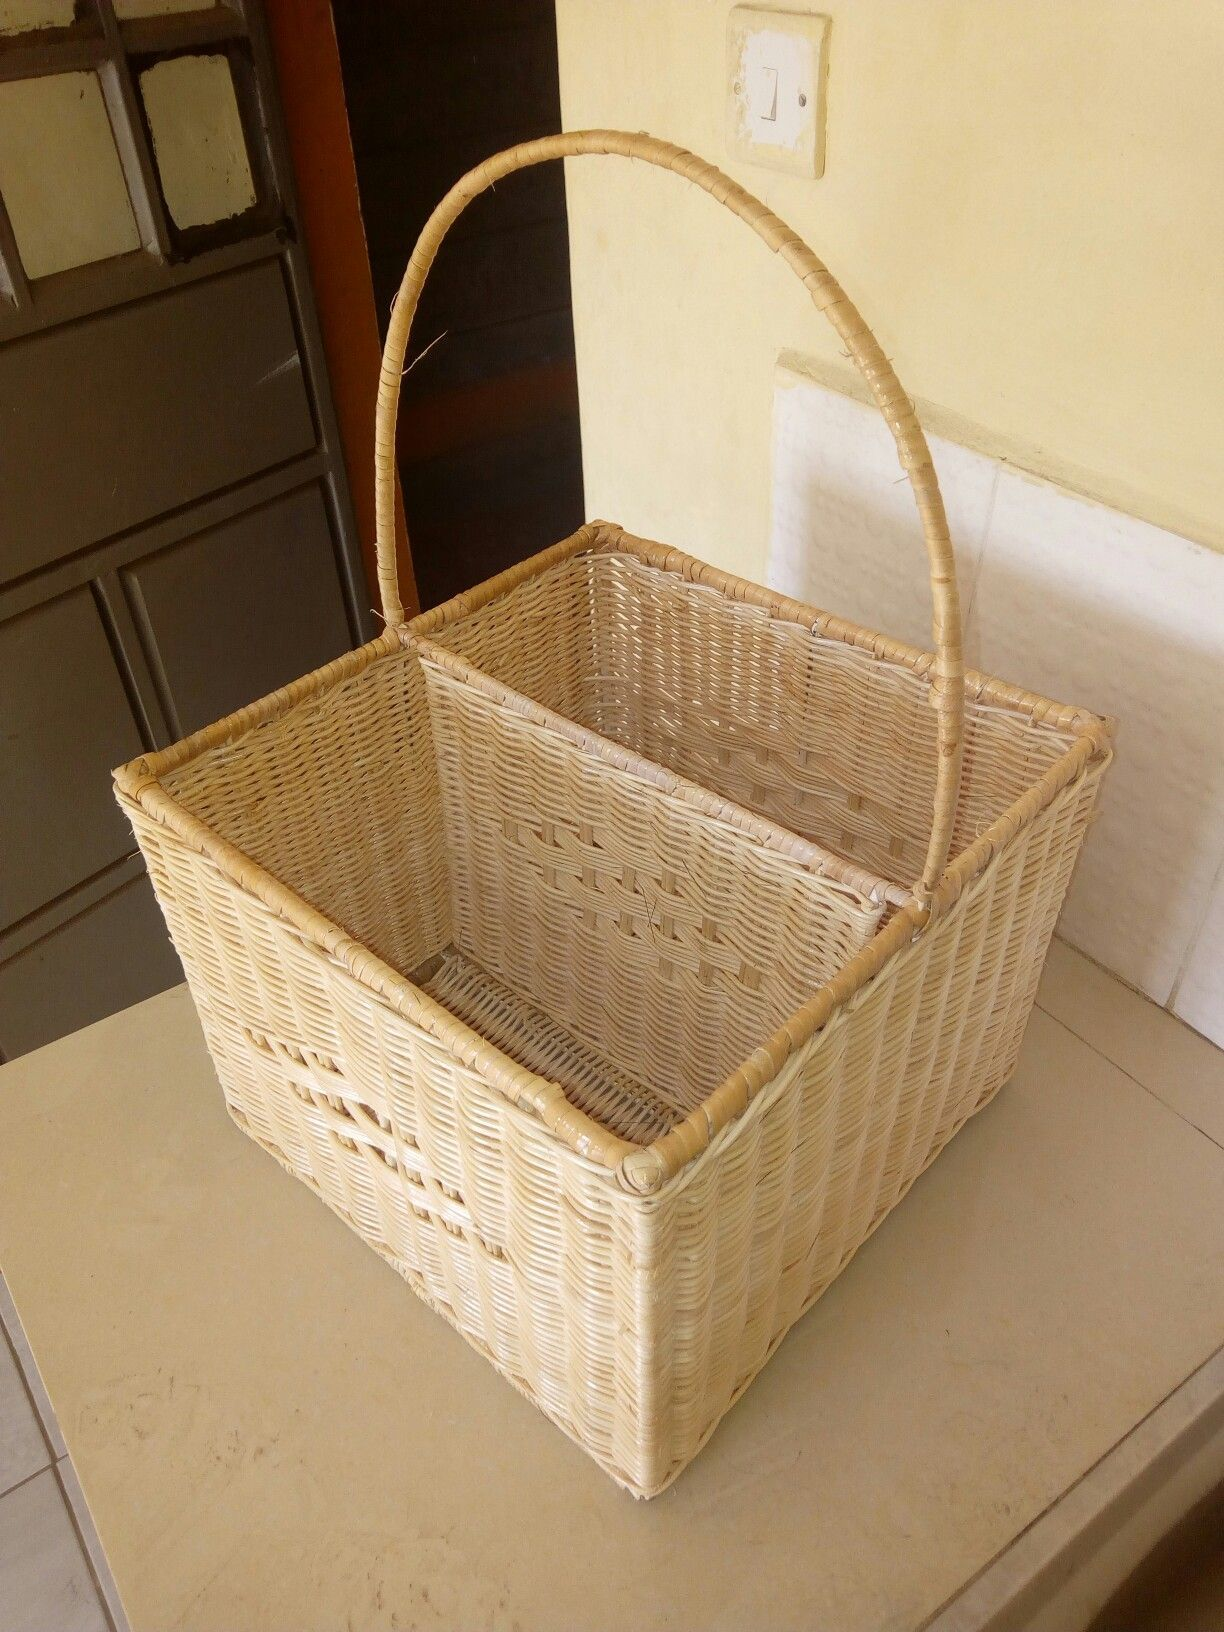 Rattan wicker amenity basket.. . #art #hangingbaskets #instaart #rattan #discgolfbaskets #wickerman #pinterest #easterbaskets #baskets #pinterestwin #wicker #pinterestsuccess #pinterestfail #prilaga #rattanbagmurah #rattanbag #artwork #wickerpark #wickerbag #pinteresthair #rattanbags #rattanfurniture #nailart #artist #wickerbasket #giftbaskets #pinterestinspired #pinterestfail Rattan wicker amenity basket.. . #art #hangingbaskets #instaart #rattan #discgolfbaskets #wickerman #pinterest #easterba #pinterestinspired